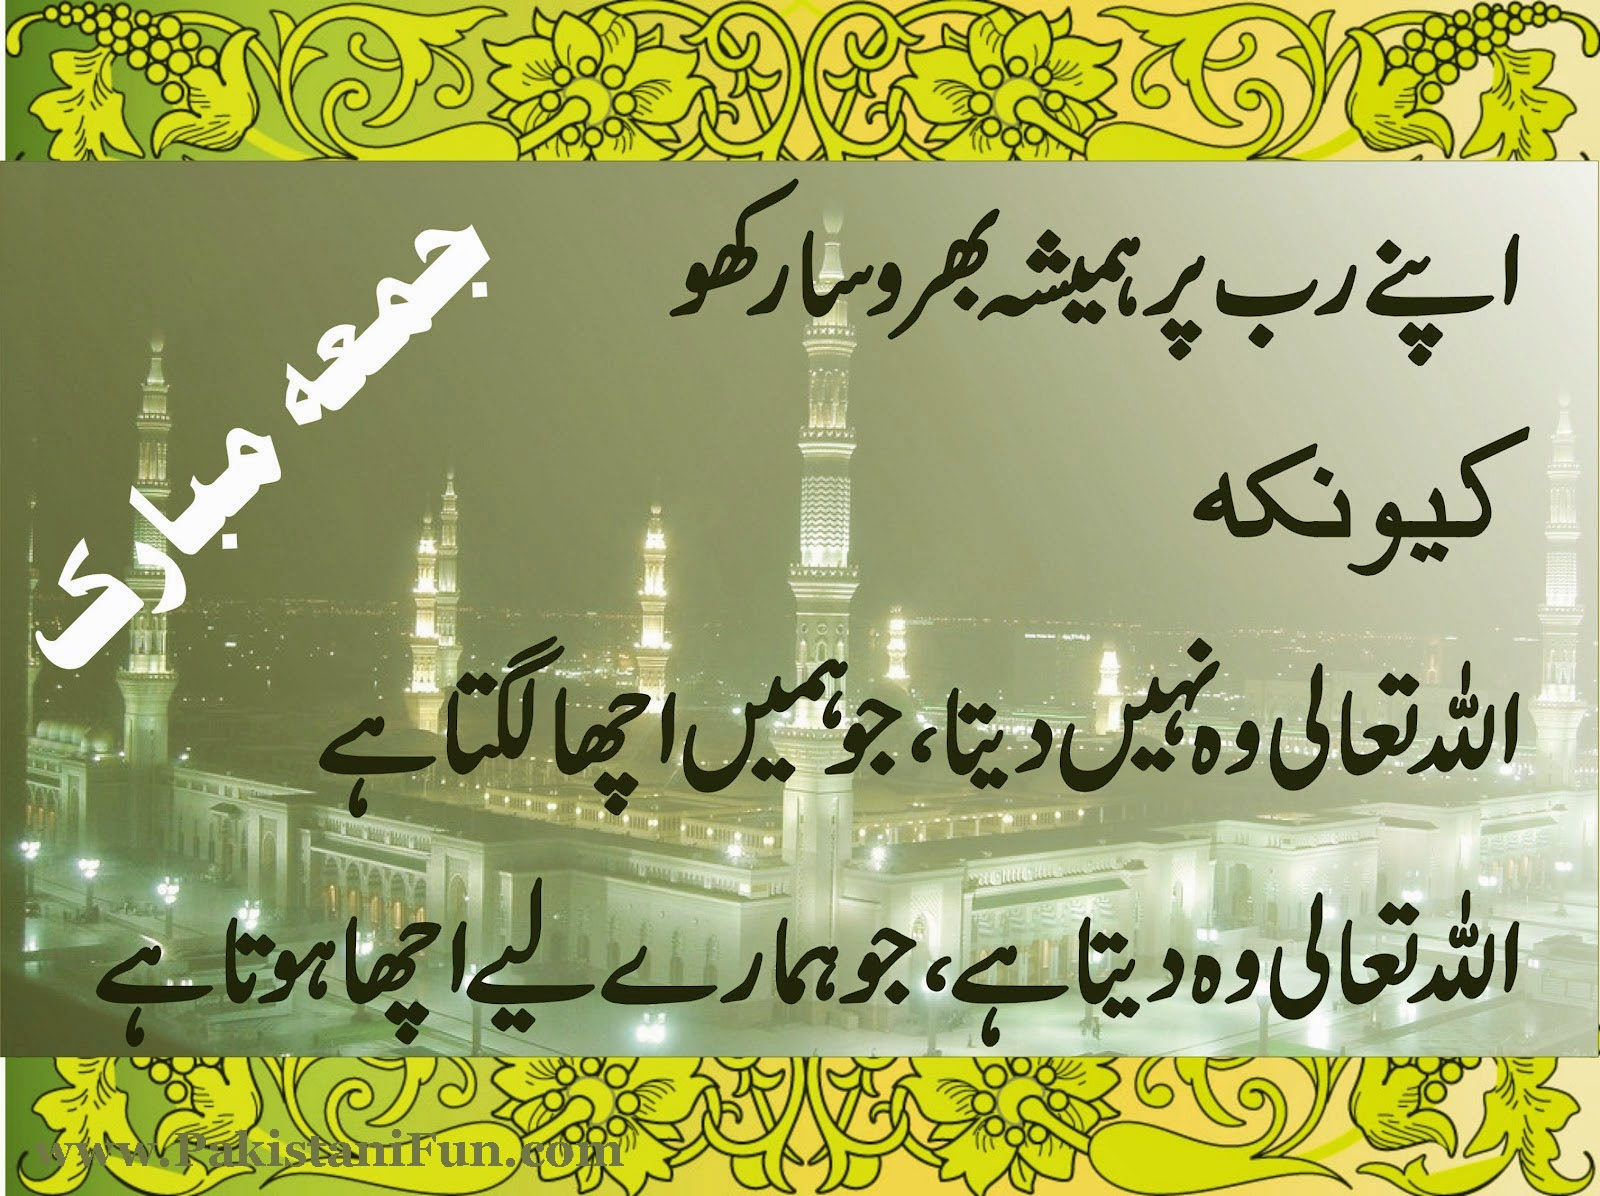 TOP AMAIZING ISLAMIC DESKTOP WALLPAPERS: Jumma Mubarak ...